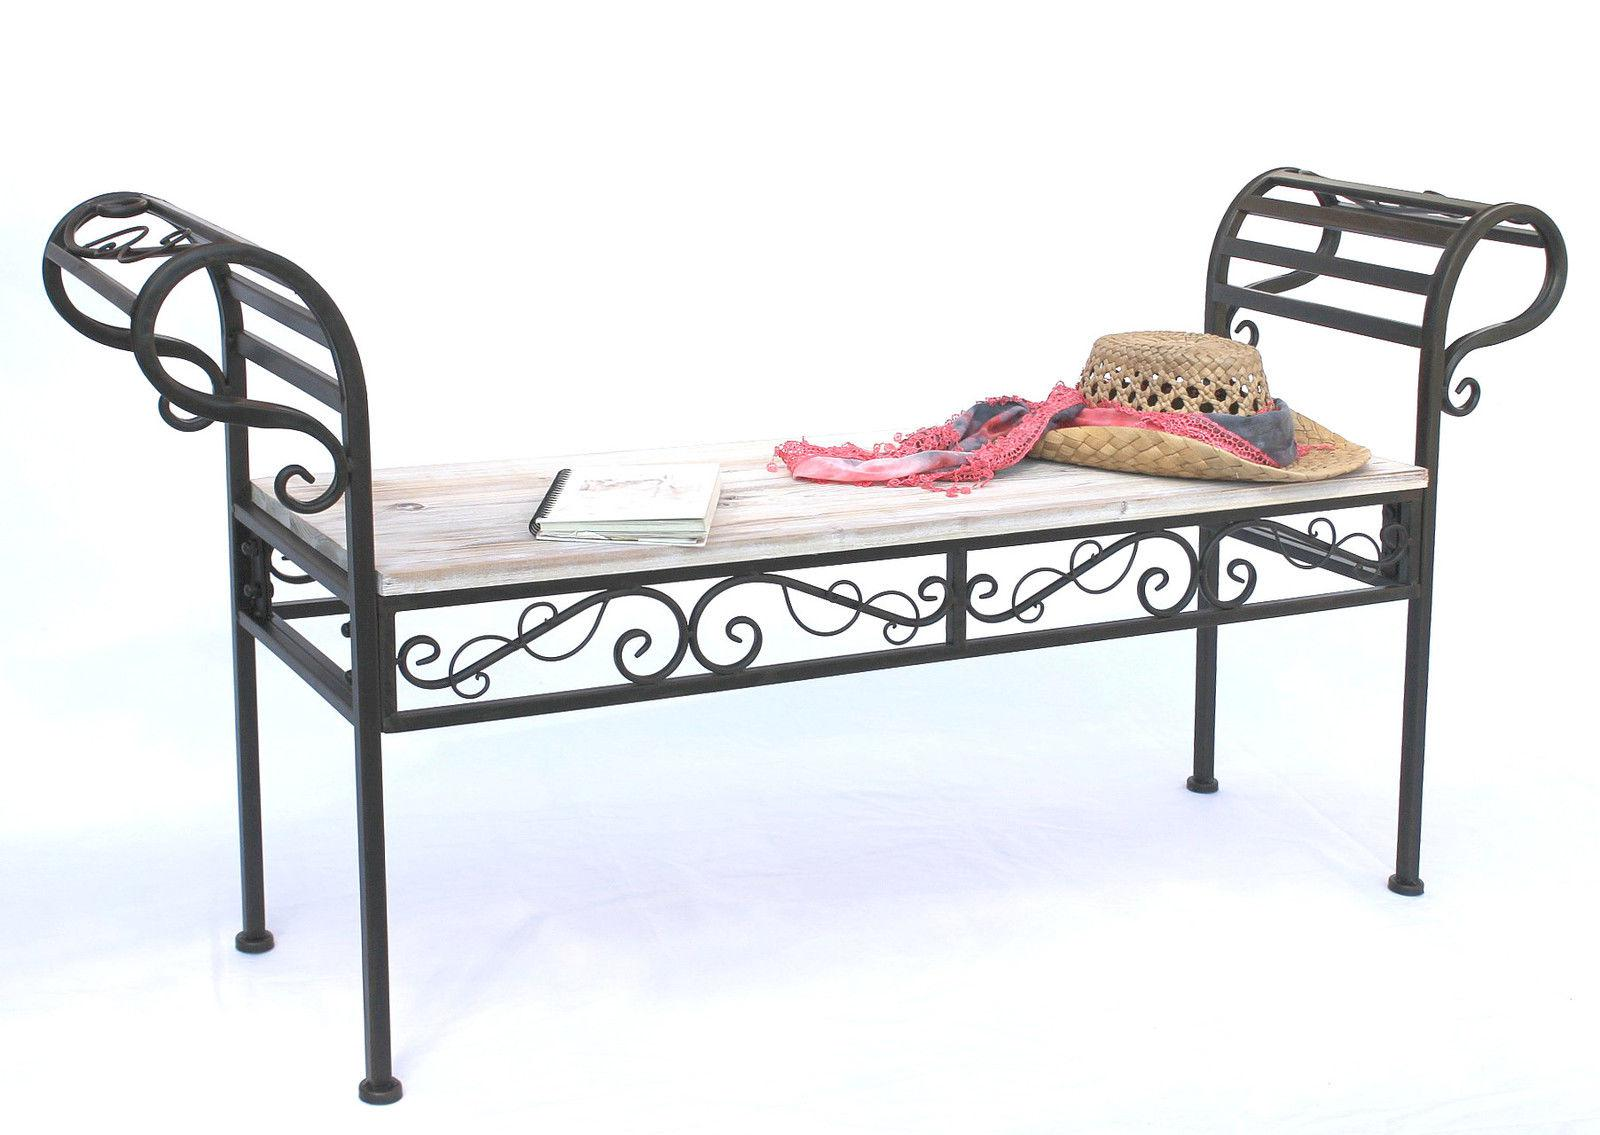 banc de jardin 19279 banc 133 cm en m tal et bois banc banc fer forg ebay. Black Bedroom Furniture Sets. Home Design Ideas